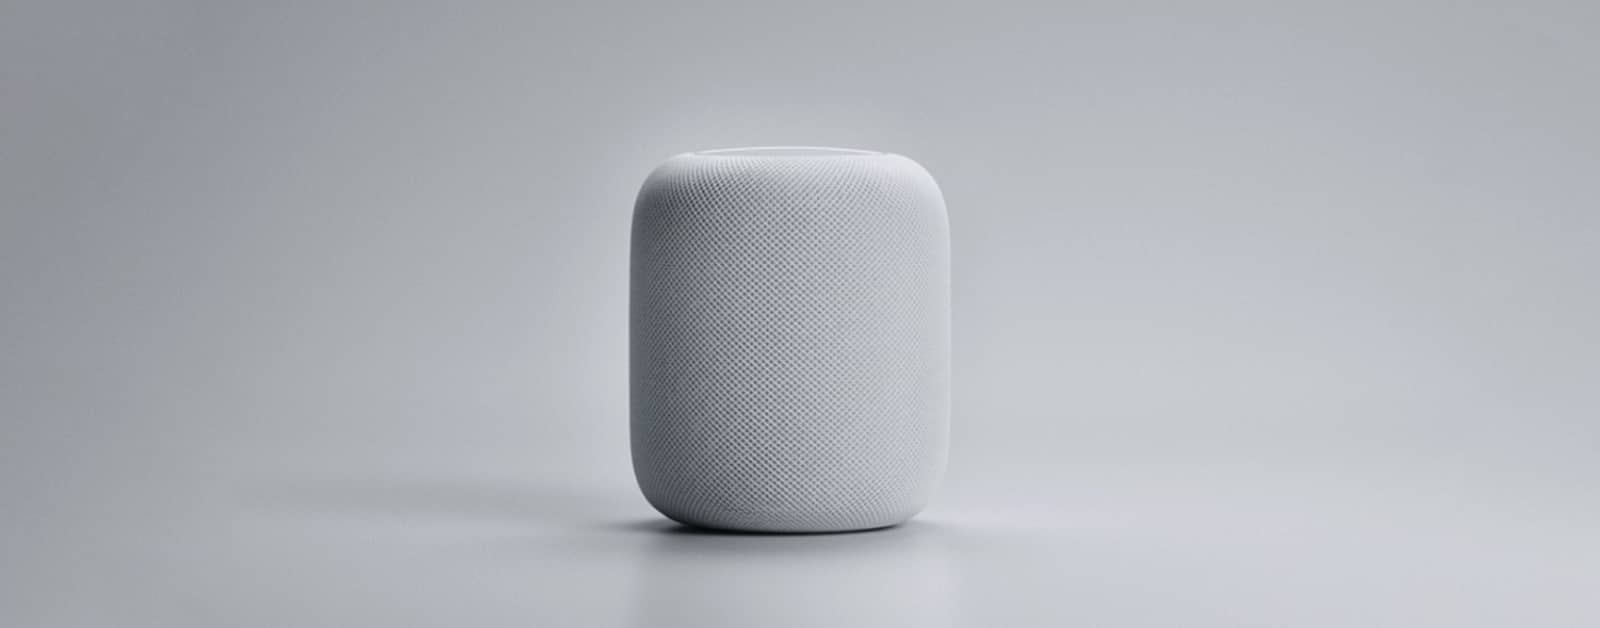 image of homepod